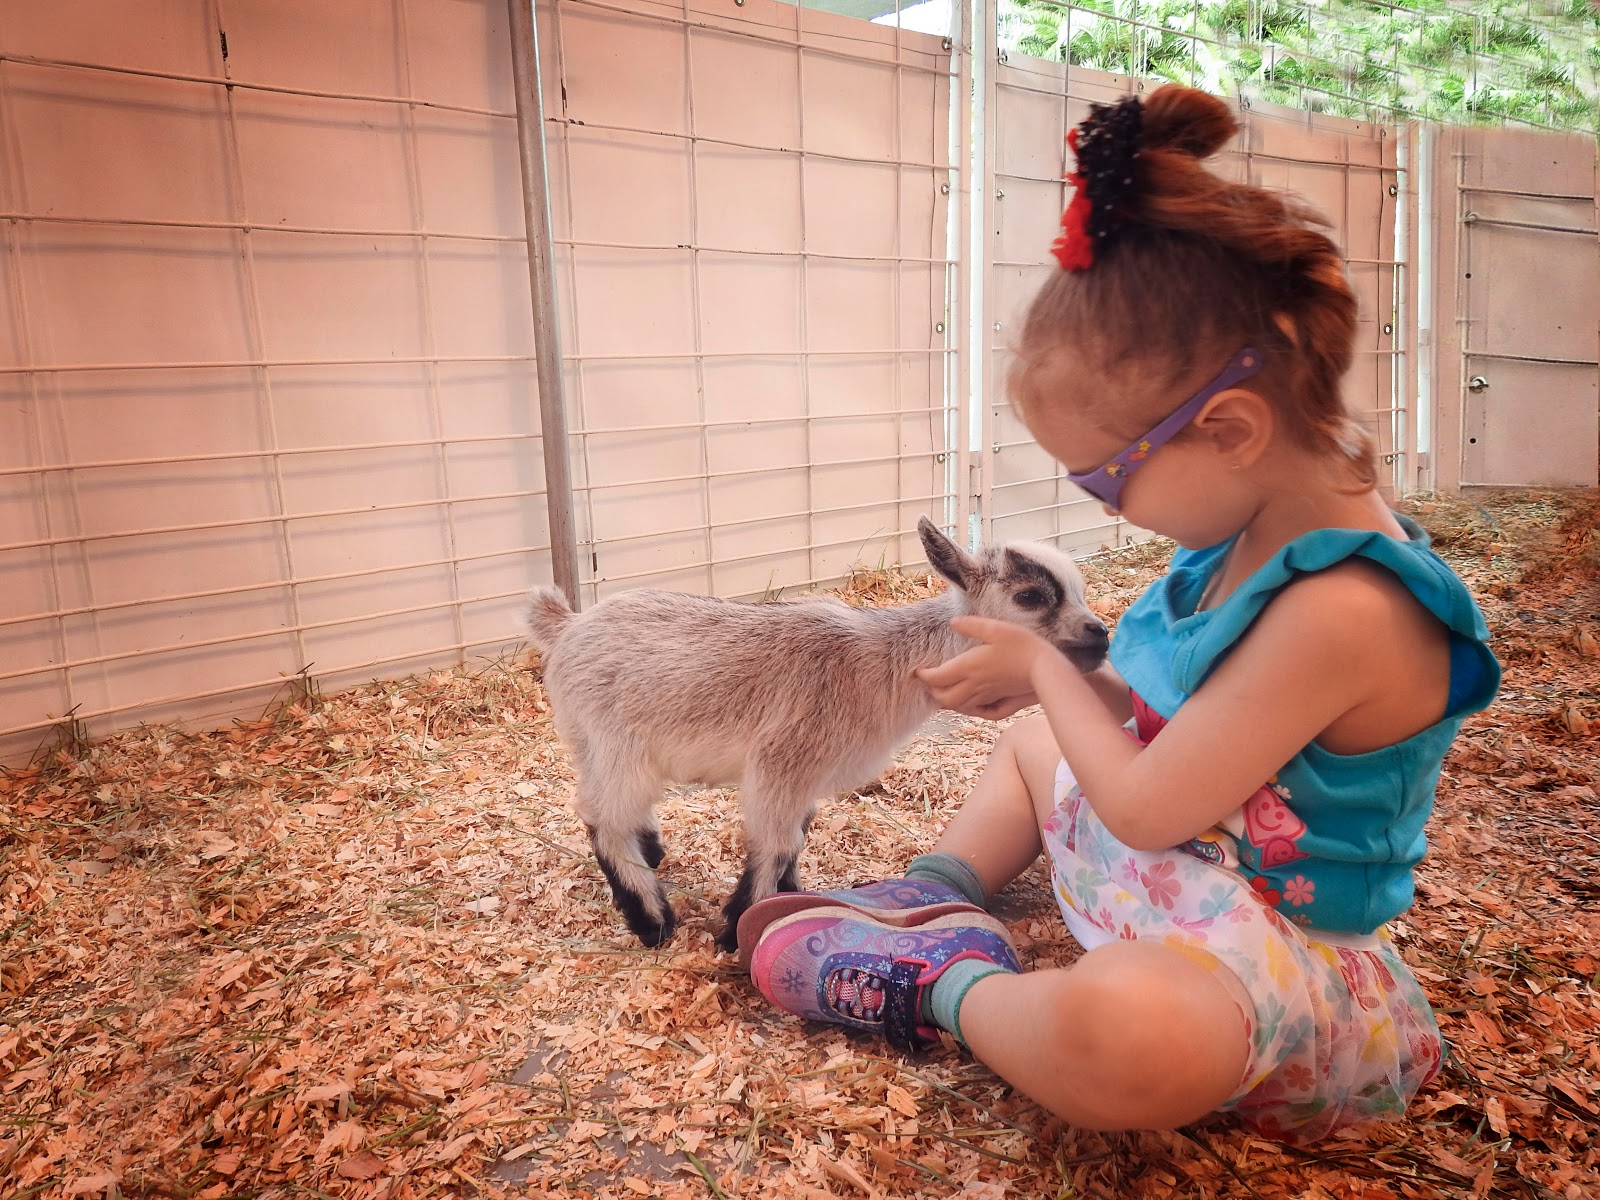 bond between animals and kids